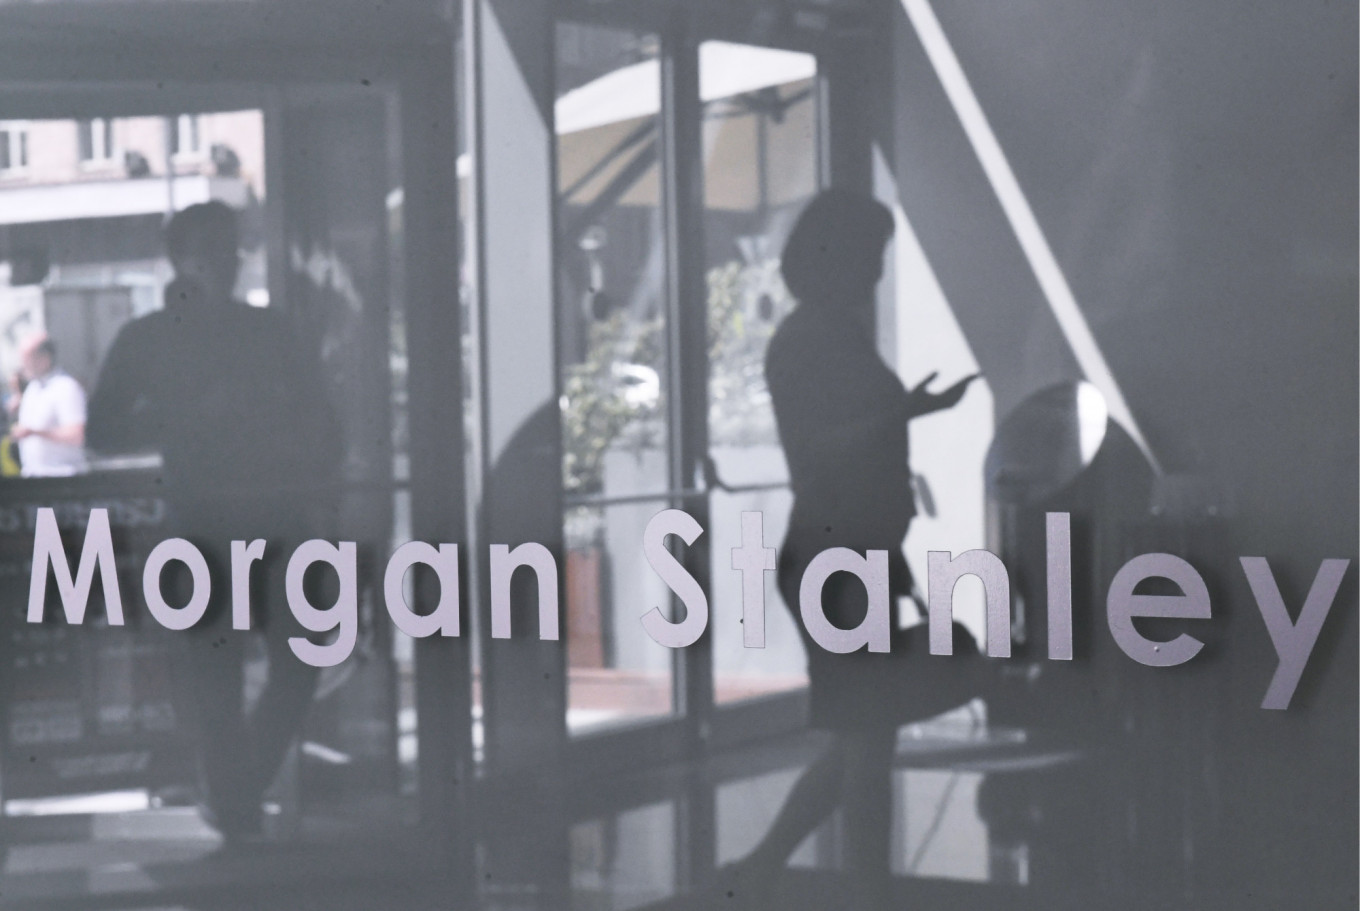 Morgan Stanley to Shut Down Its Russian Banking Business - The